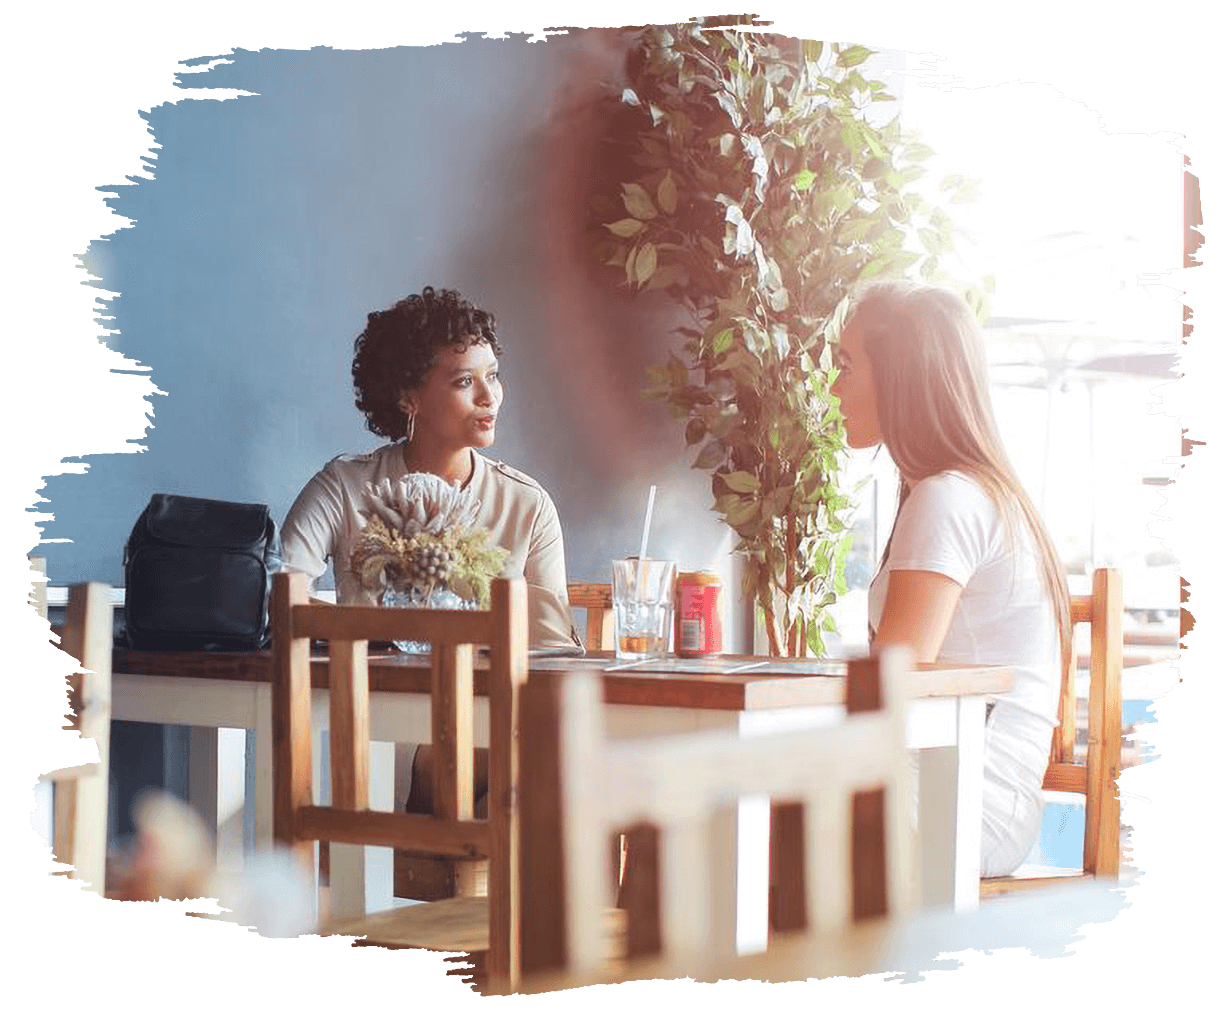 This is an image of two woman in a cafe with the sun shining in the background